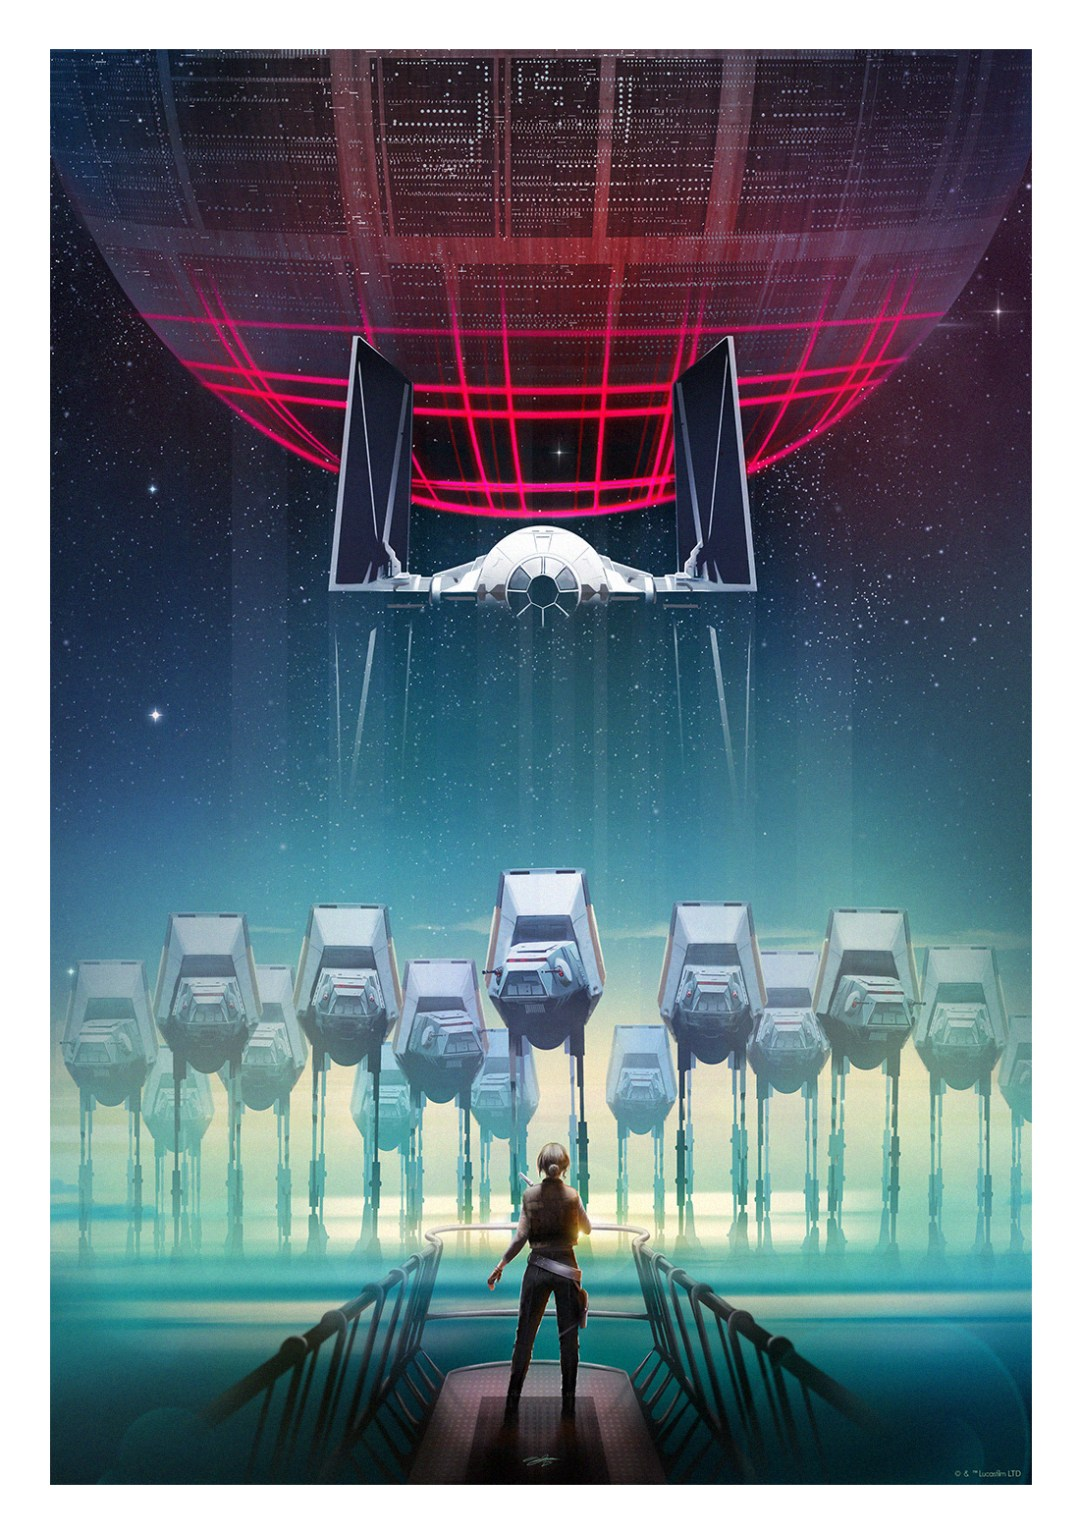 Courage by Andy Fairhurst